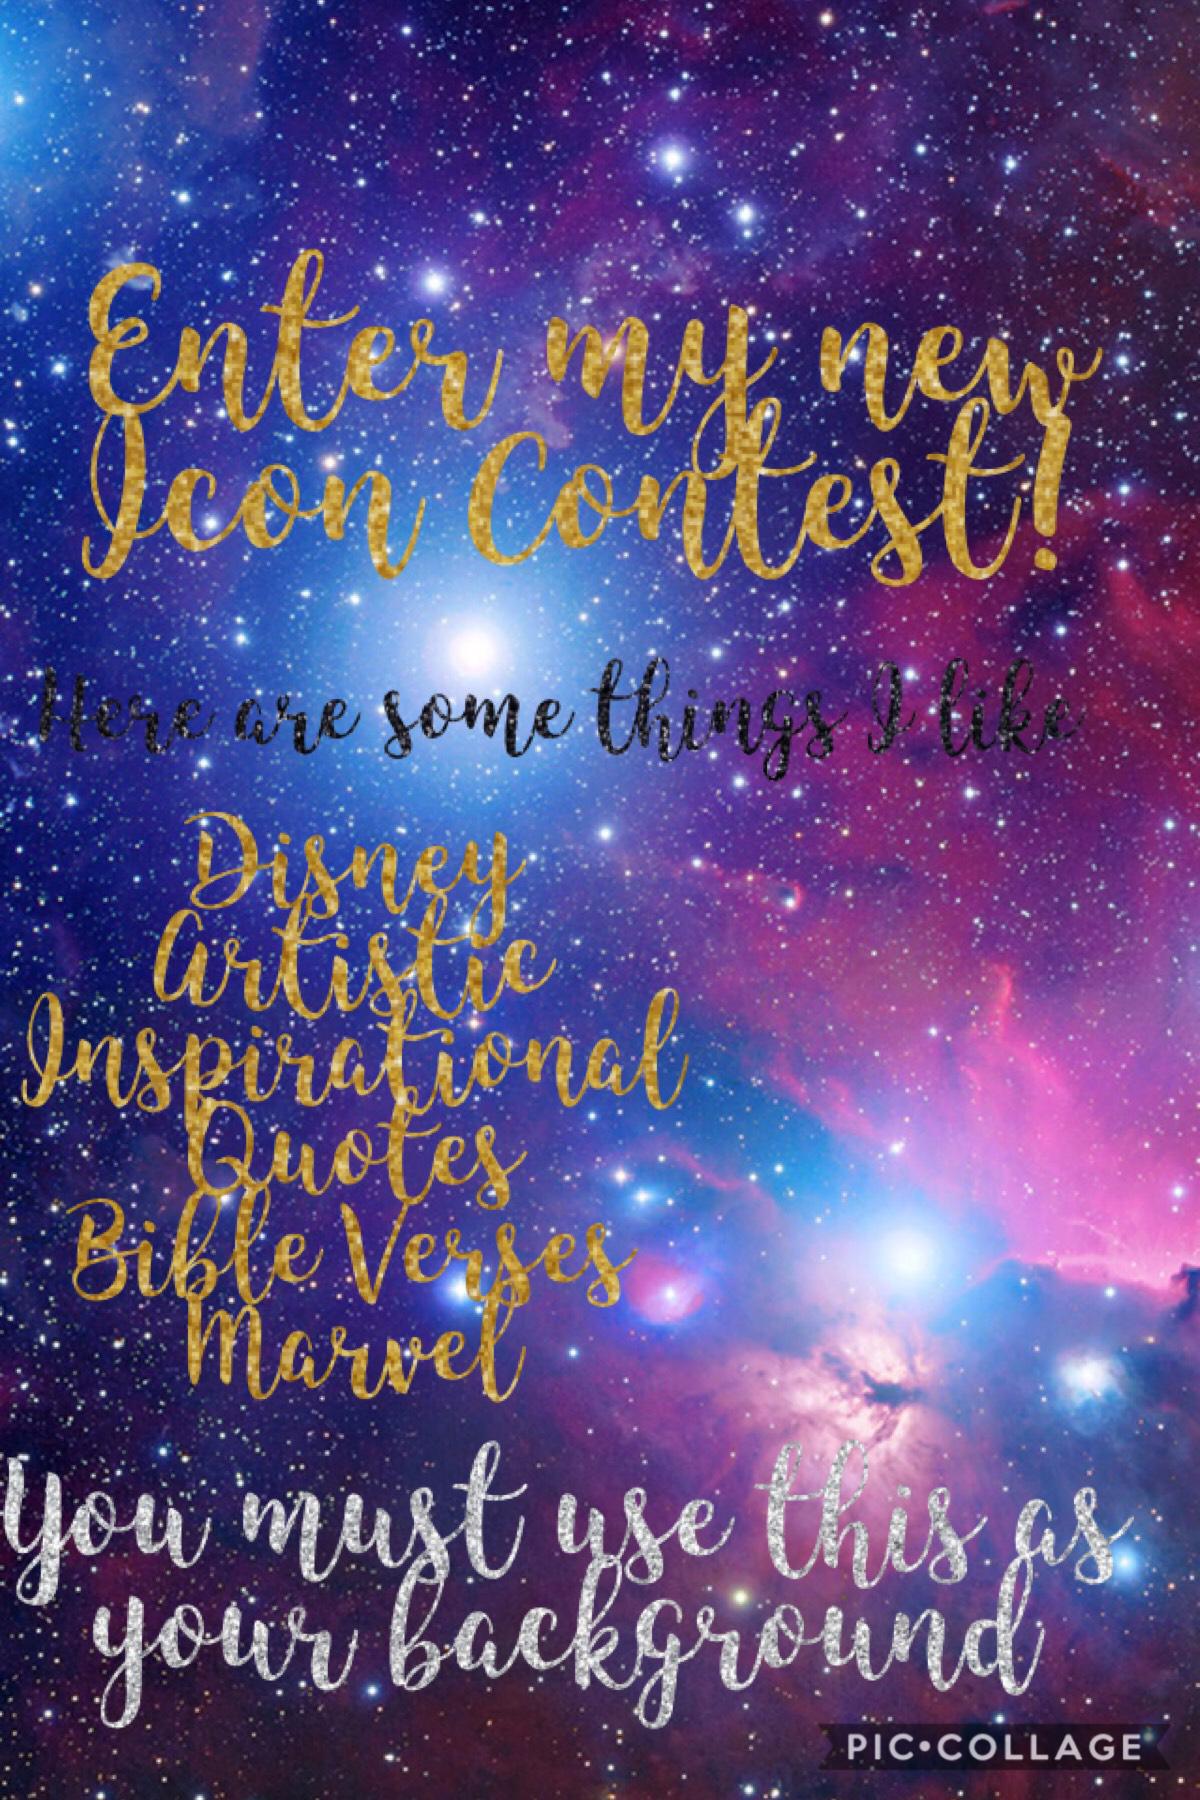 I have my first icon contest! Make an icon on the remix page and I will post the winners on 9/01/19!